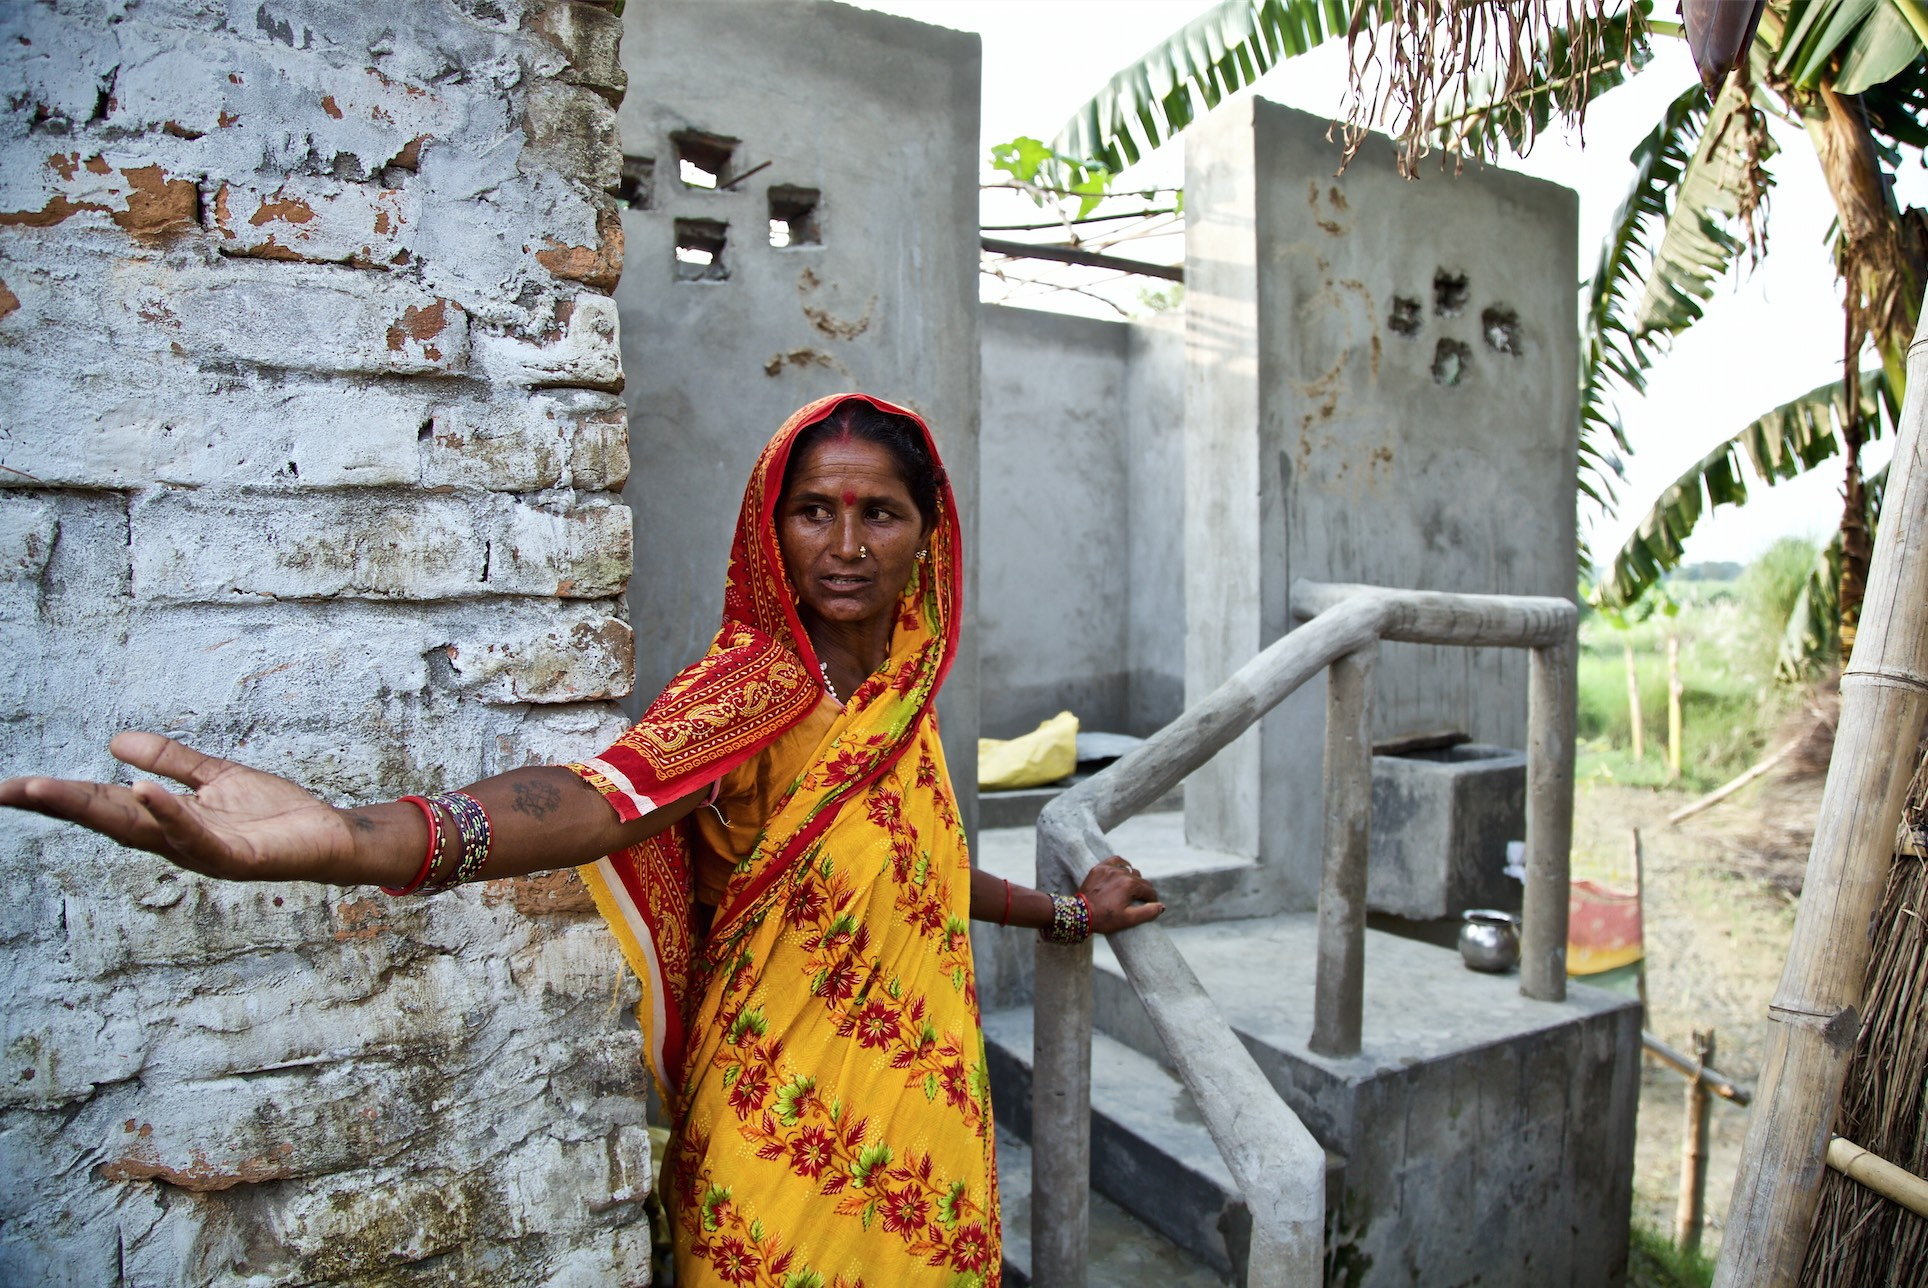 Chhathi Devi is the first woman to undertake construction of a Phaydemand Shauchalaya in Naya Tola village. Credit: Watervagabond